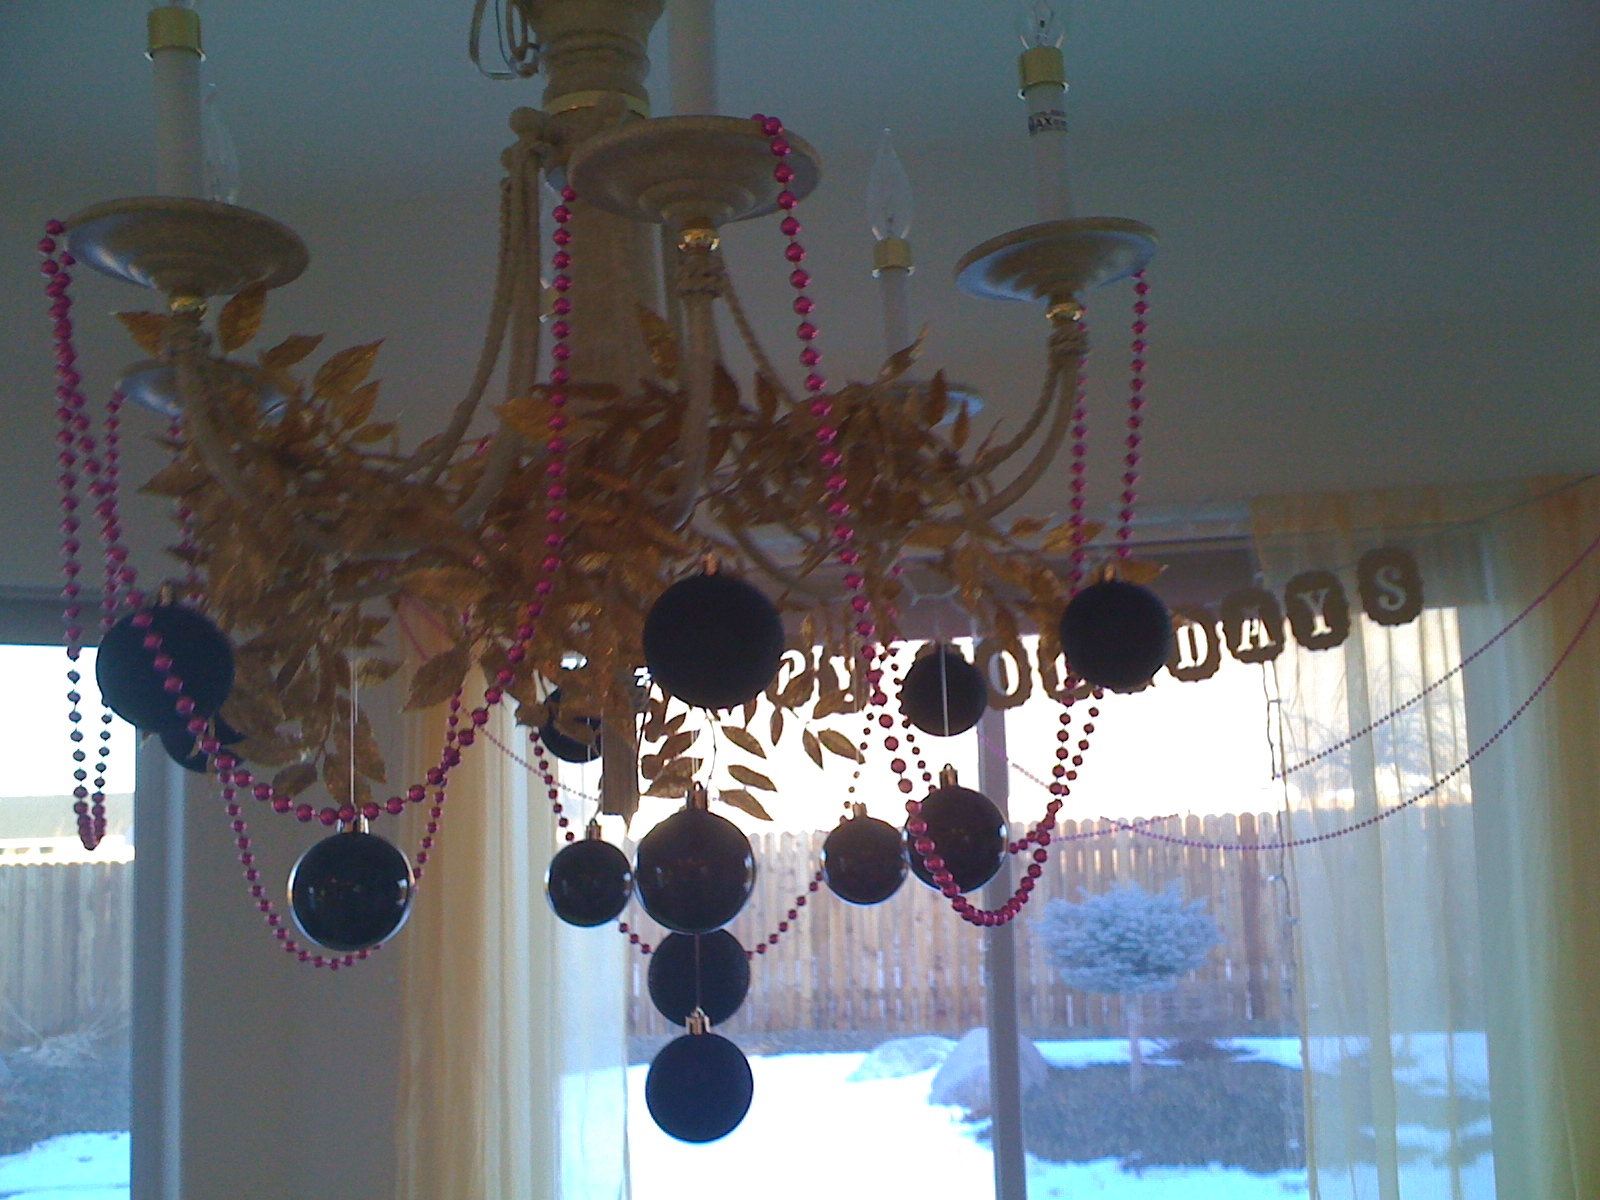 Chandeliers LightingHow to decorate with sconces - Decorating with